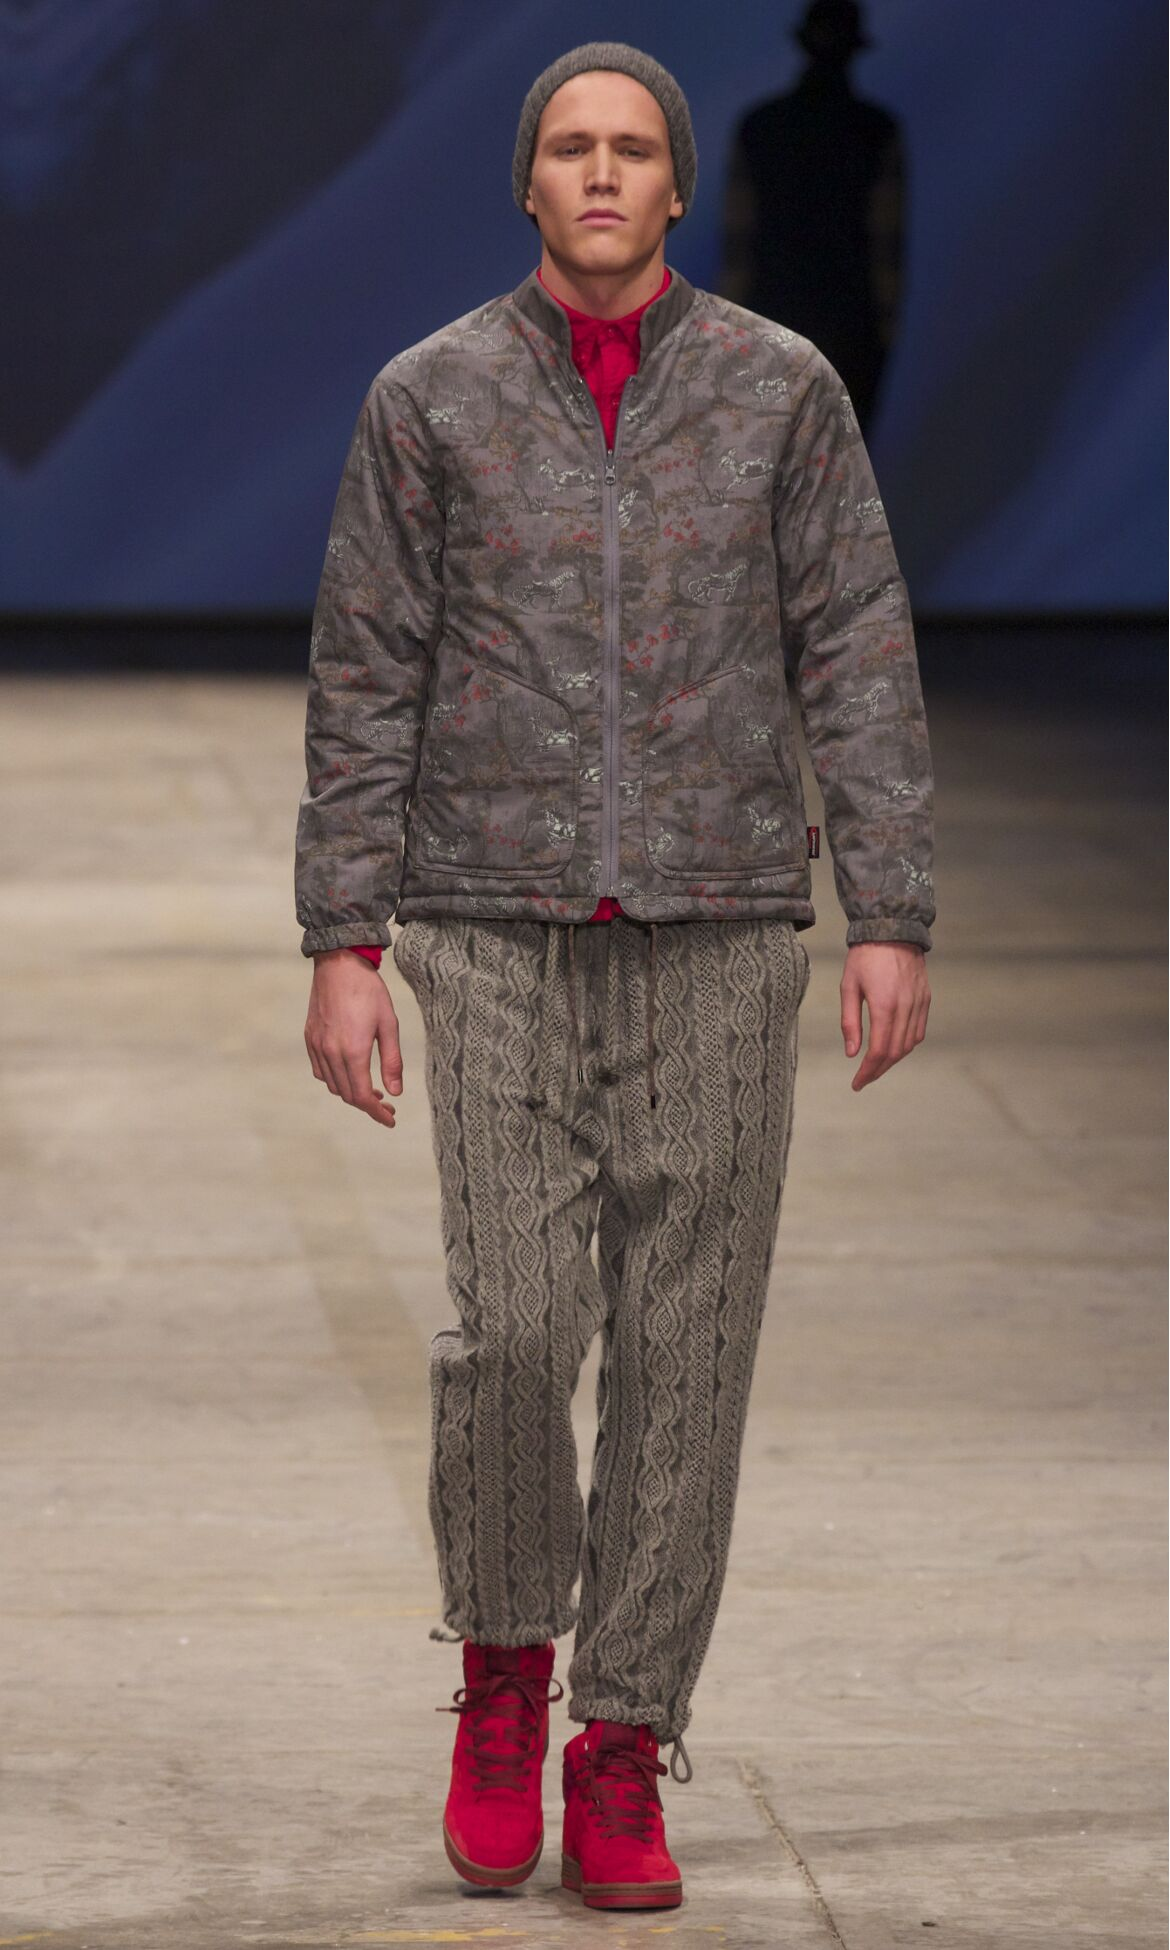 White Mountaineering Fall 2013 Catwalk